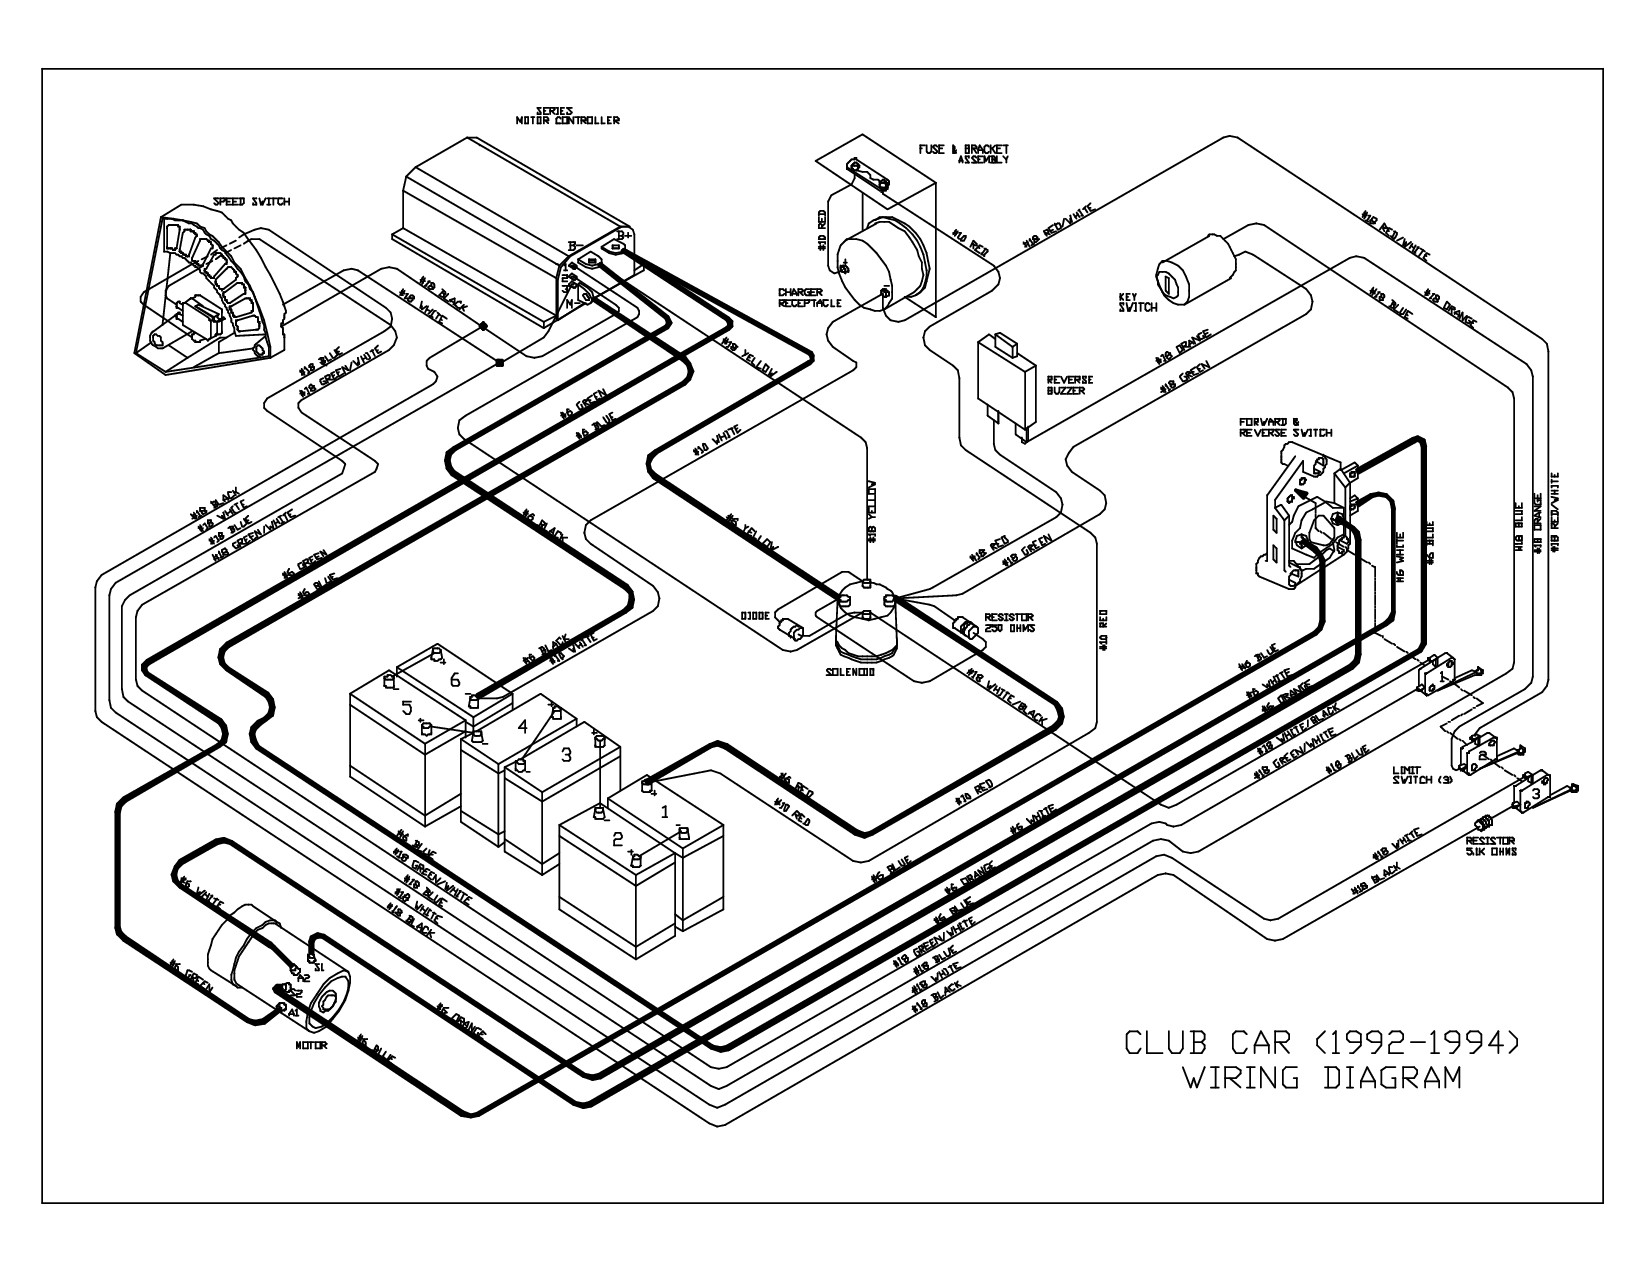 1986 Club Car Wiring Diagram 2b775 Club Car Electric Wiring Diagram Of 1986 Club Car Wiring Diagram